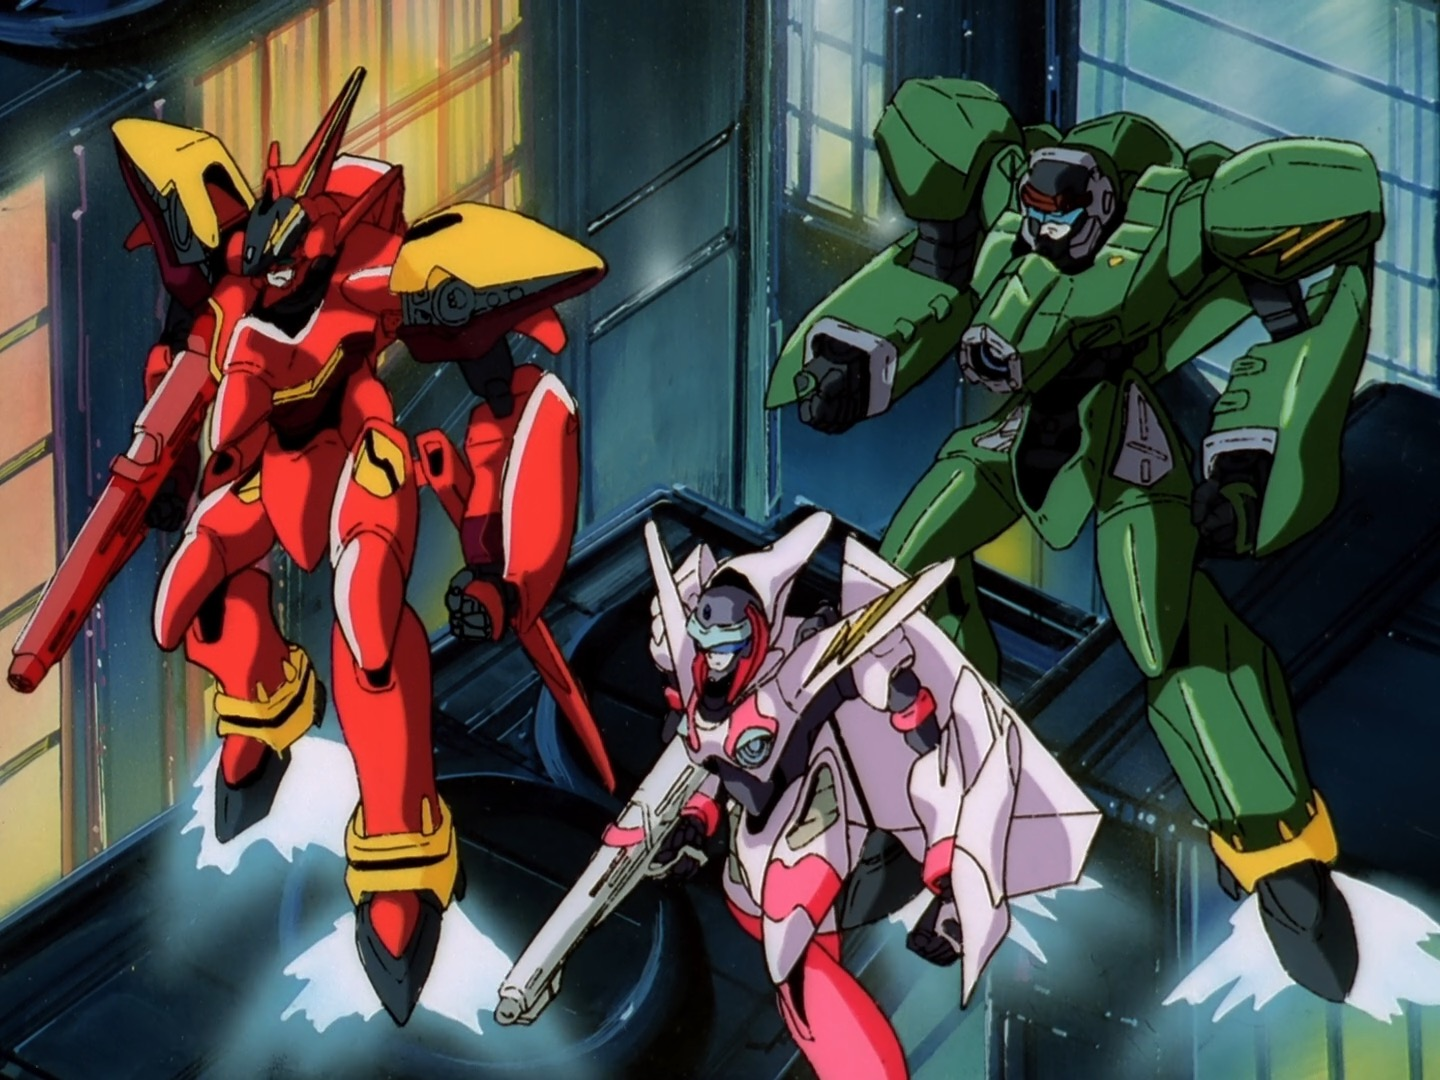 Macross-7-Sound-Force-Valkyries.jpg